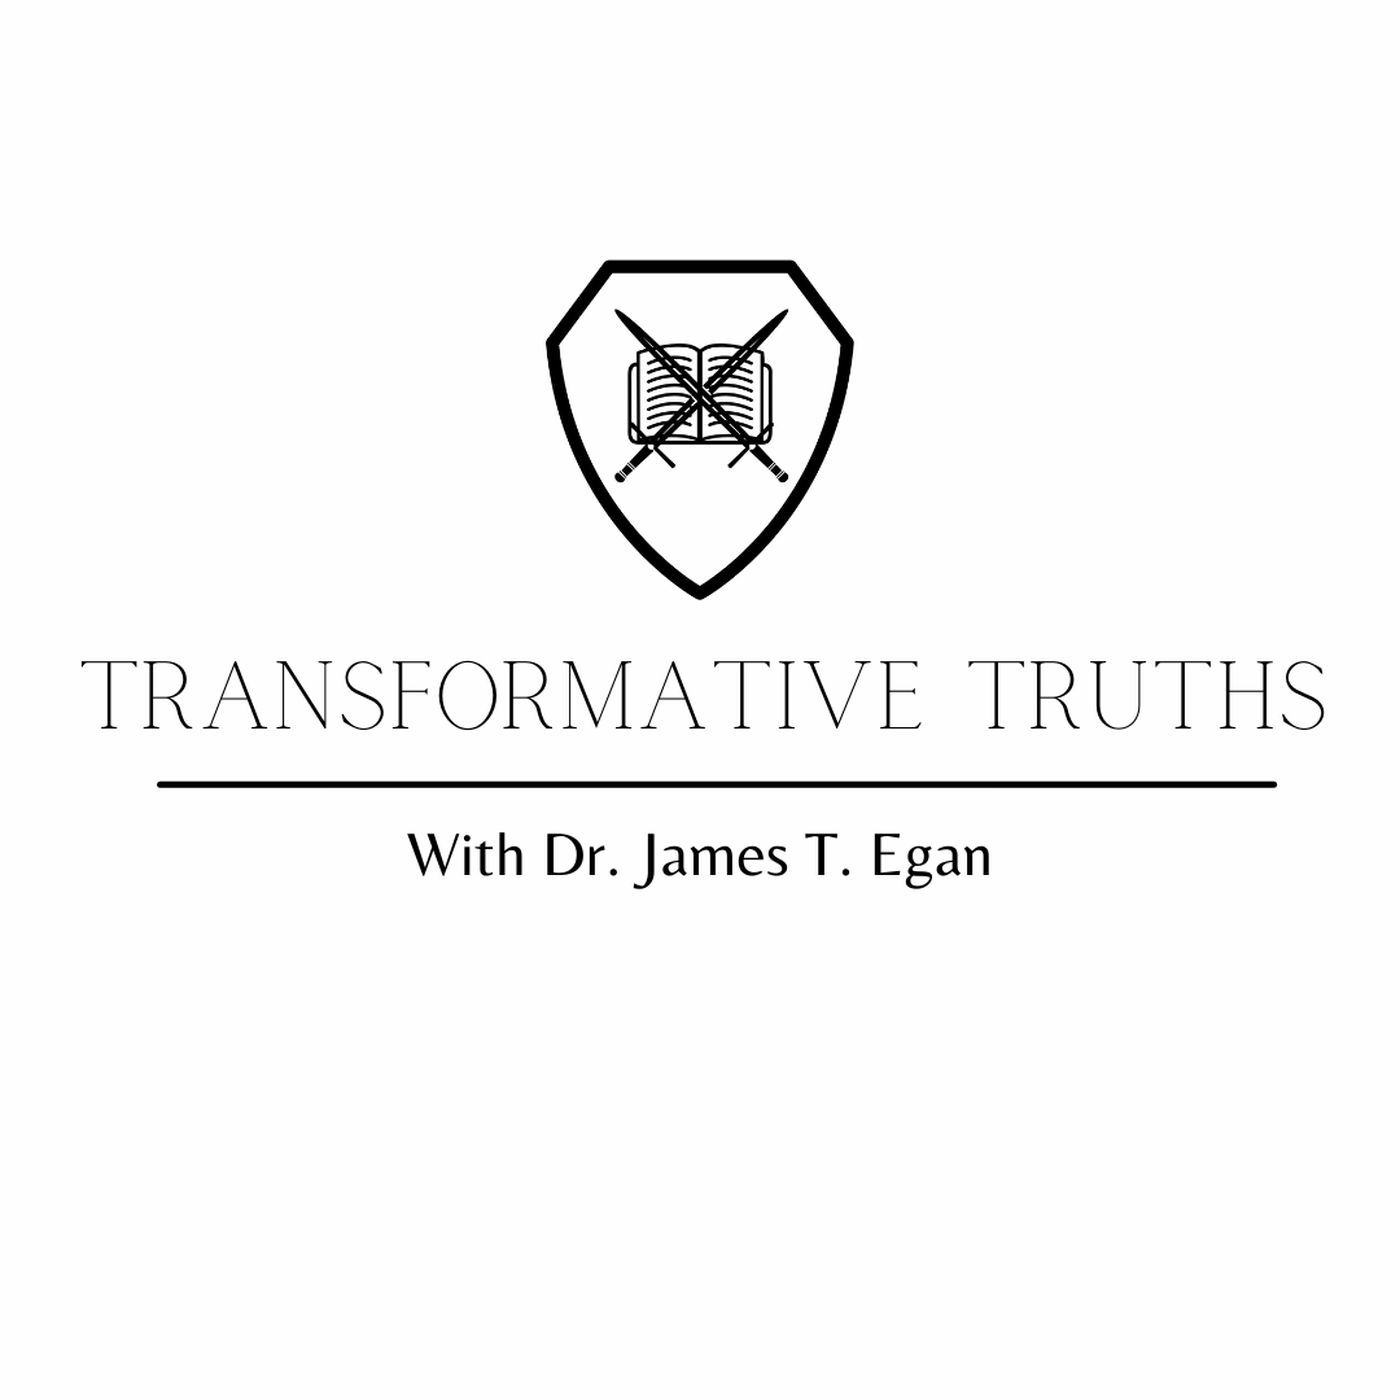 Transformative Truths with Dr. James T. Egan